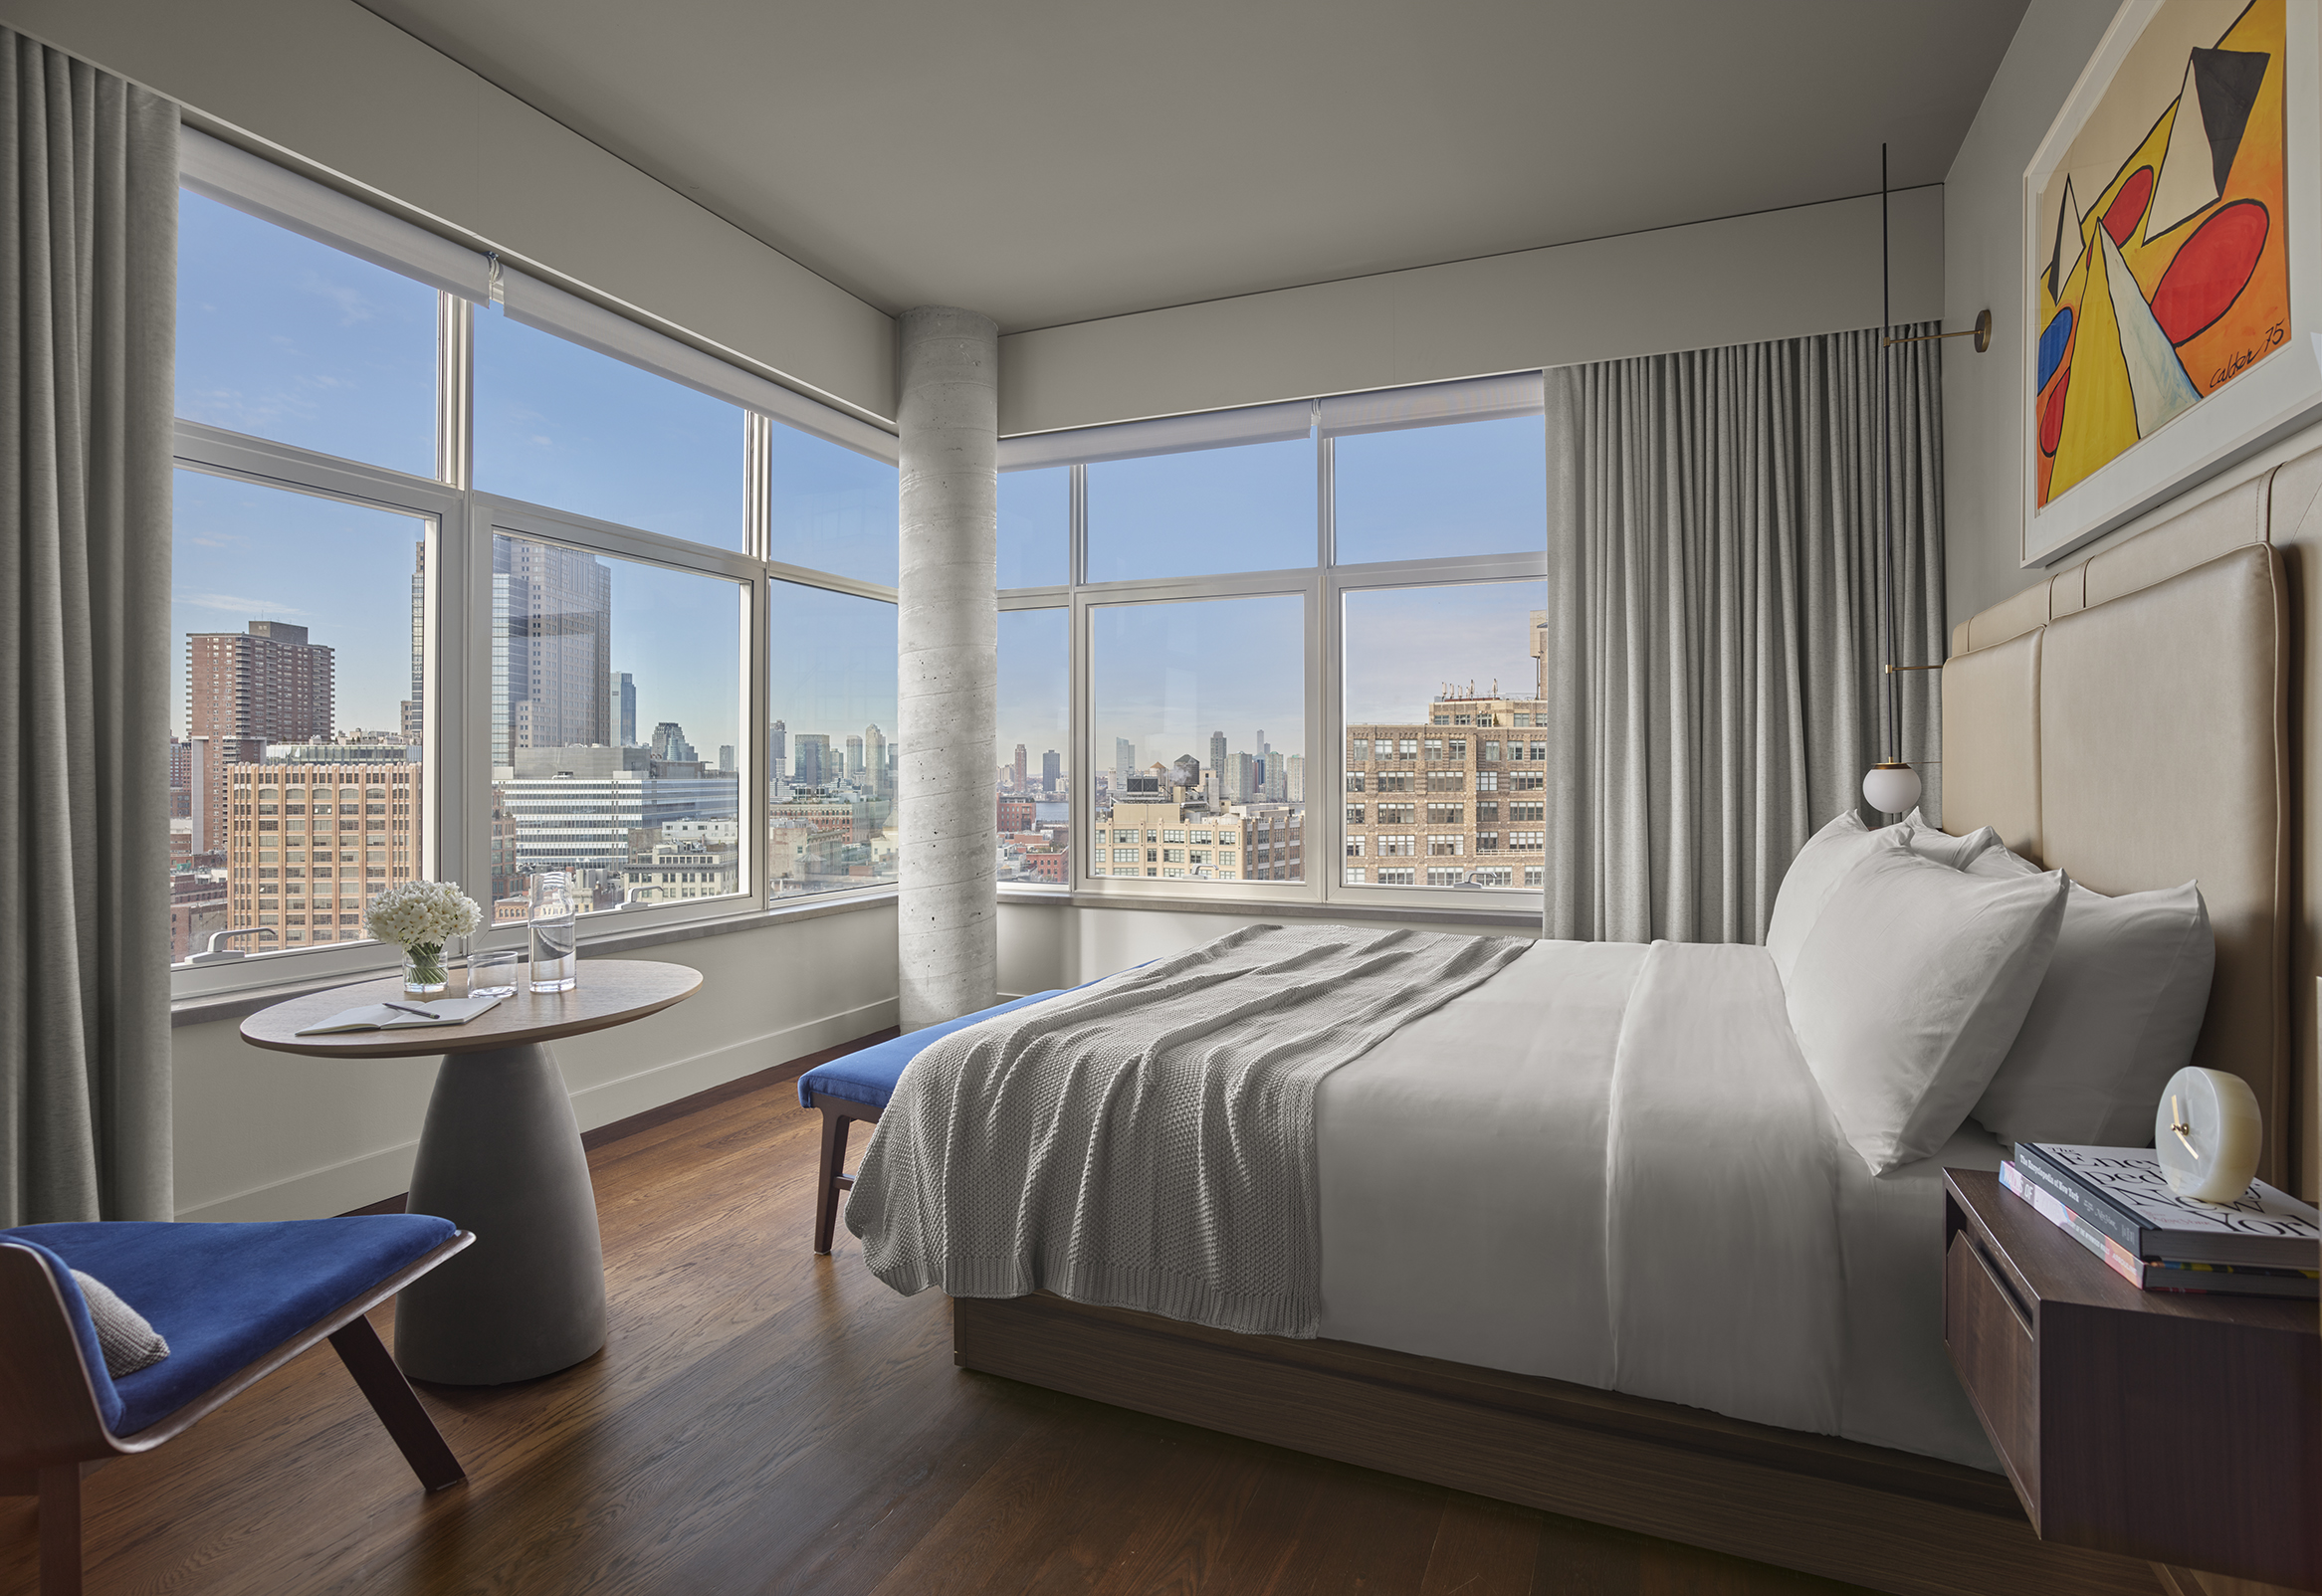 A Skyline King studio at the ModernHaus hotel in Soho, Manhatatn with king size bed, breakfast table and views of lower manhattan